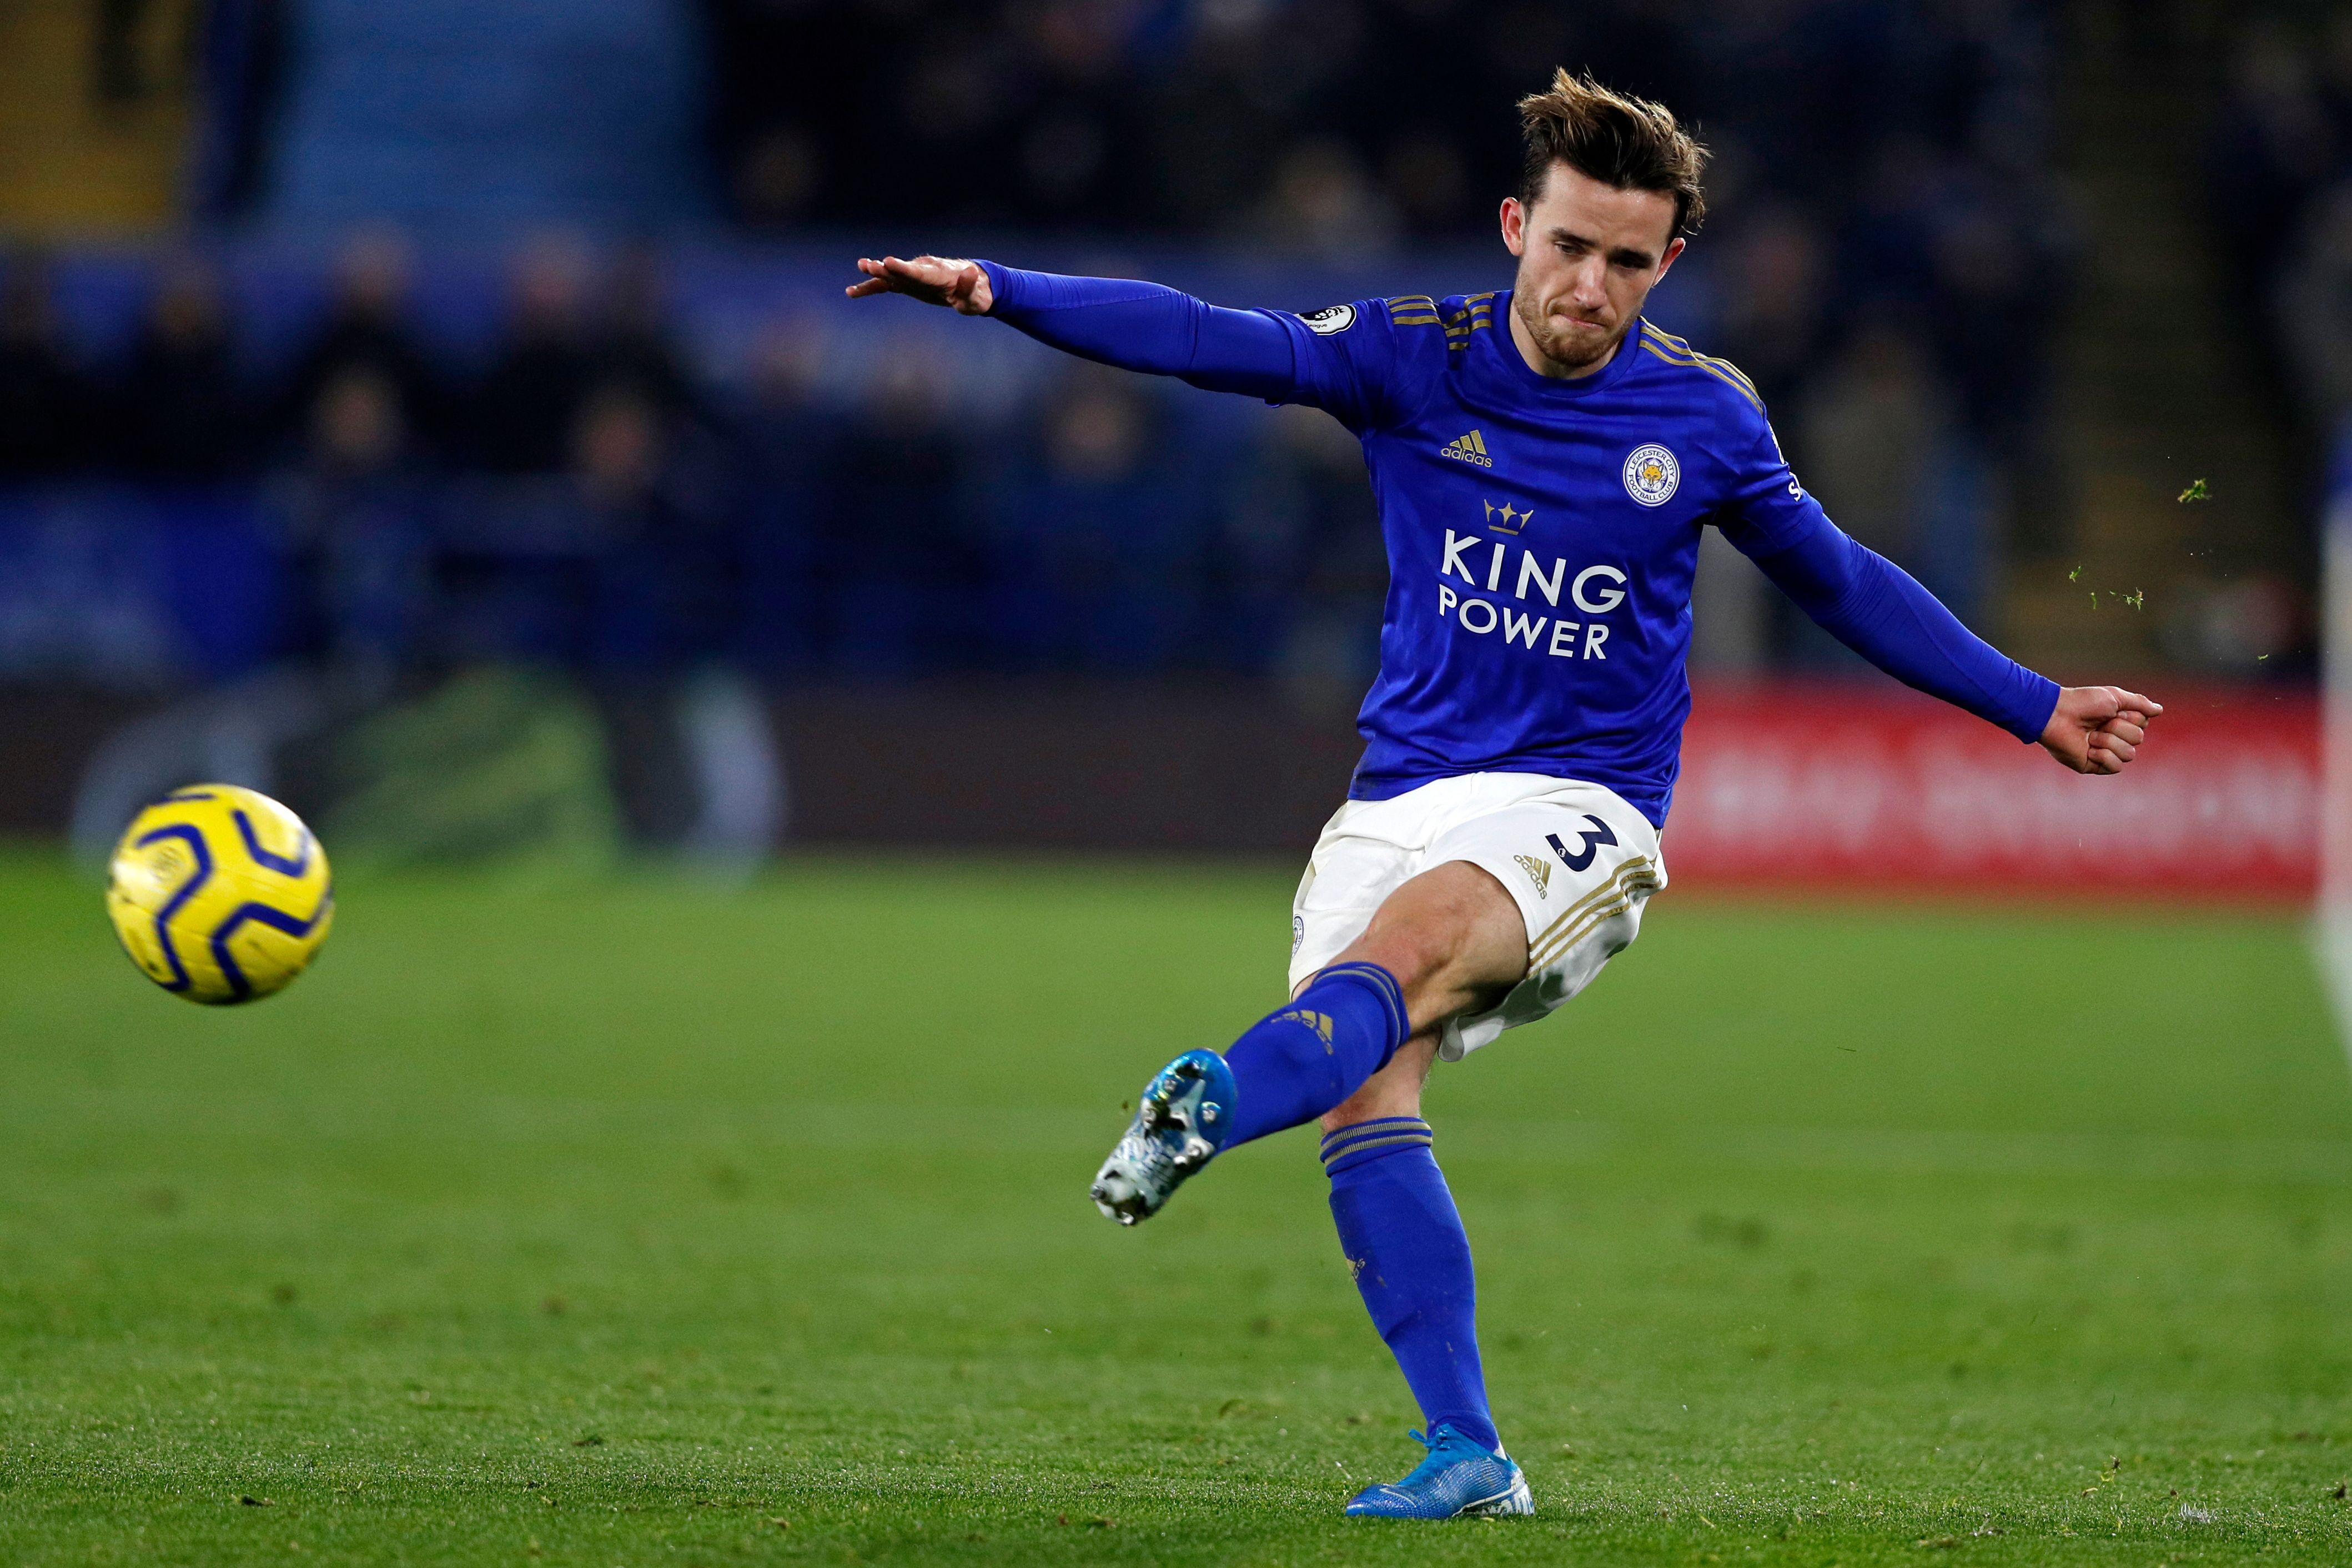 Chelsea linked with Leicester City's Ben Chilwell